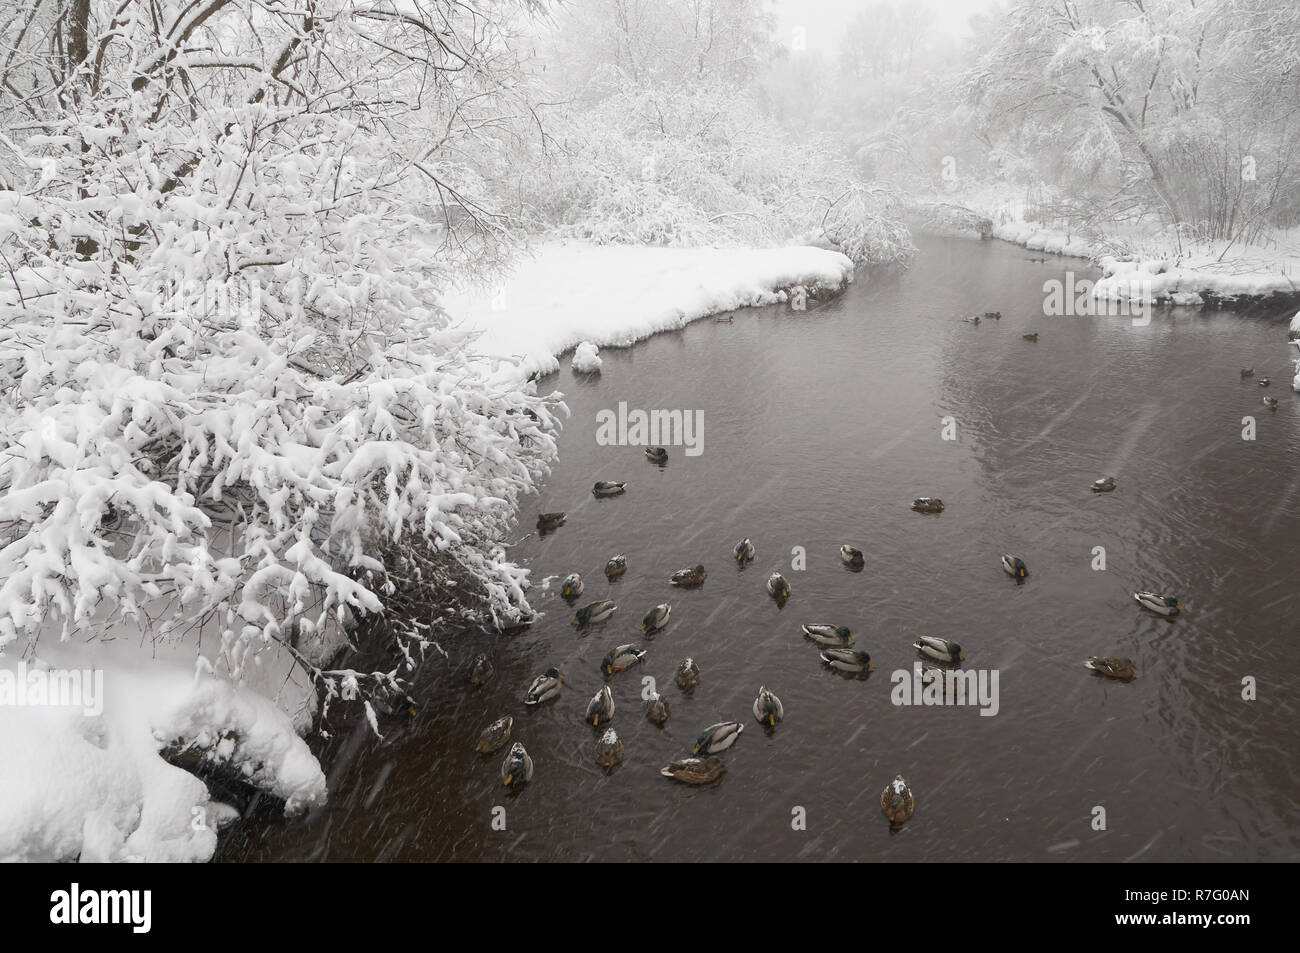 Beautiful winter scene with ducks swimming in the Yauza river after heavy snowfall, Babushkinkiy district, Moscow. - Stock Image